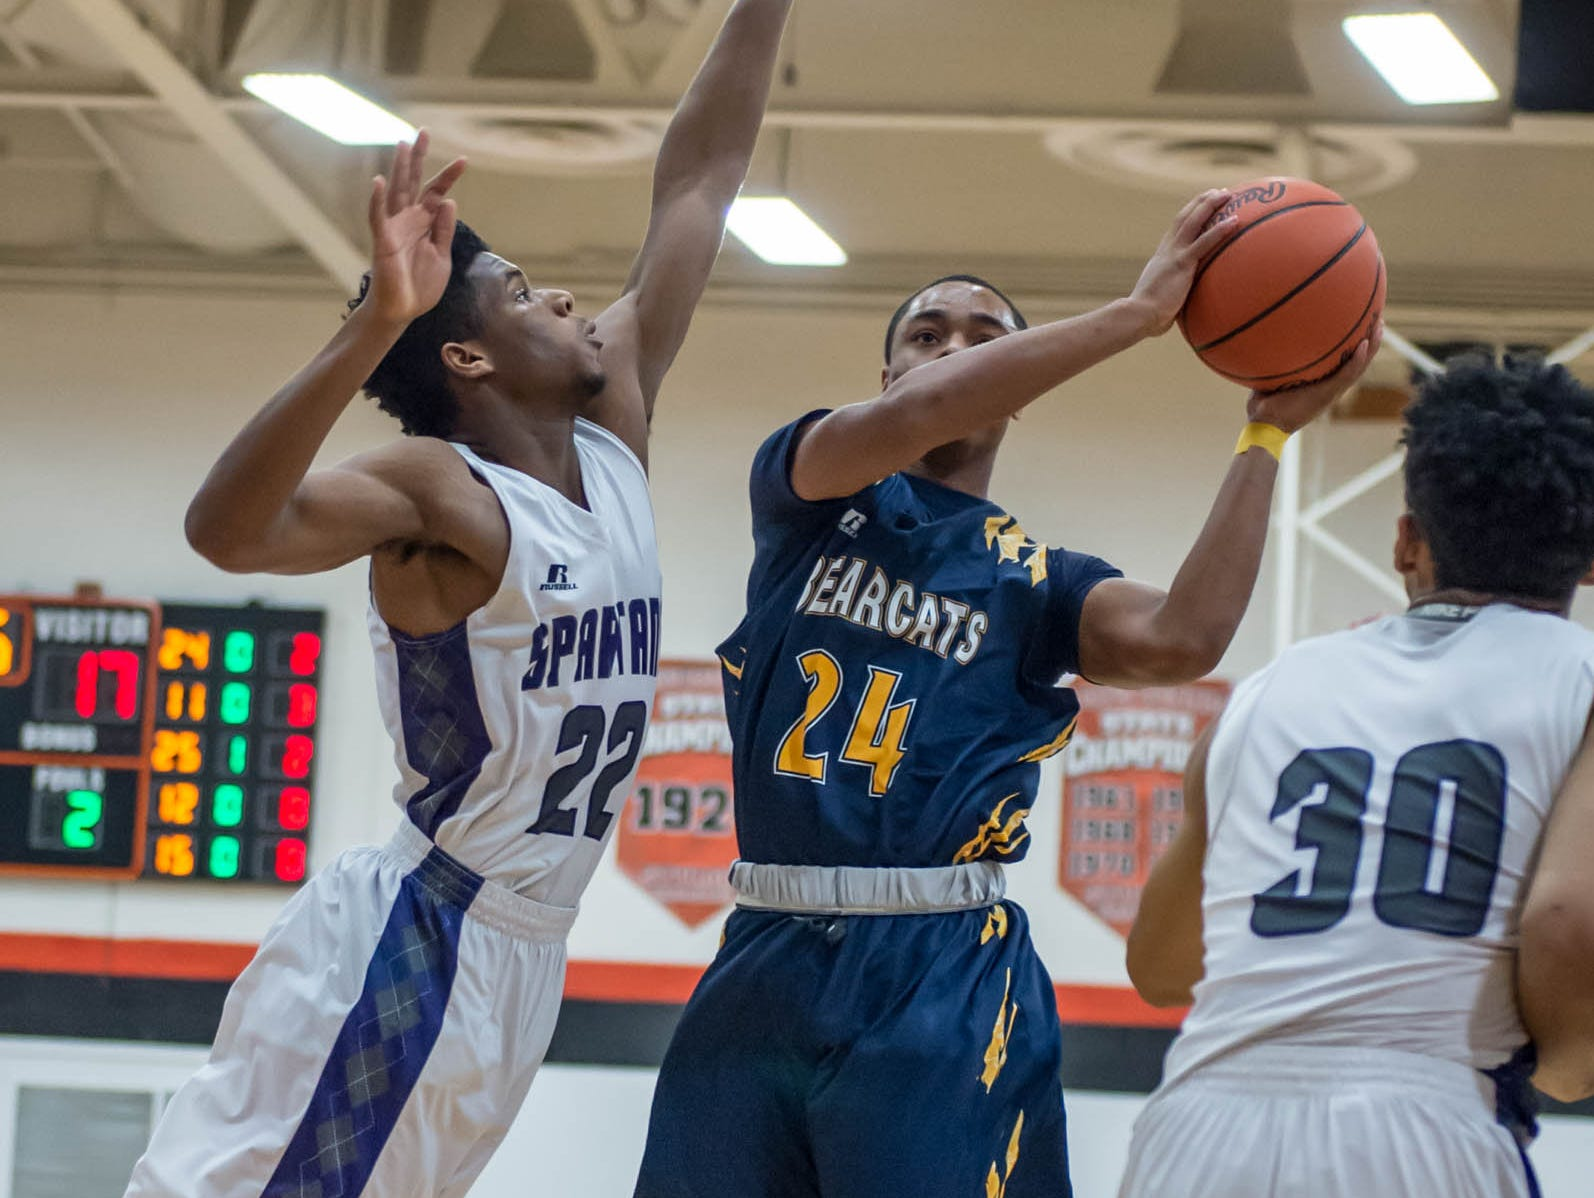 Battle Creek Central's Cyntell Williams (24) goes for the hoop against Lakeview Wednesday night.